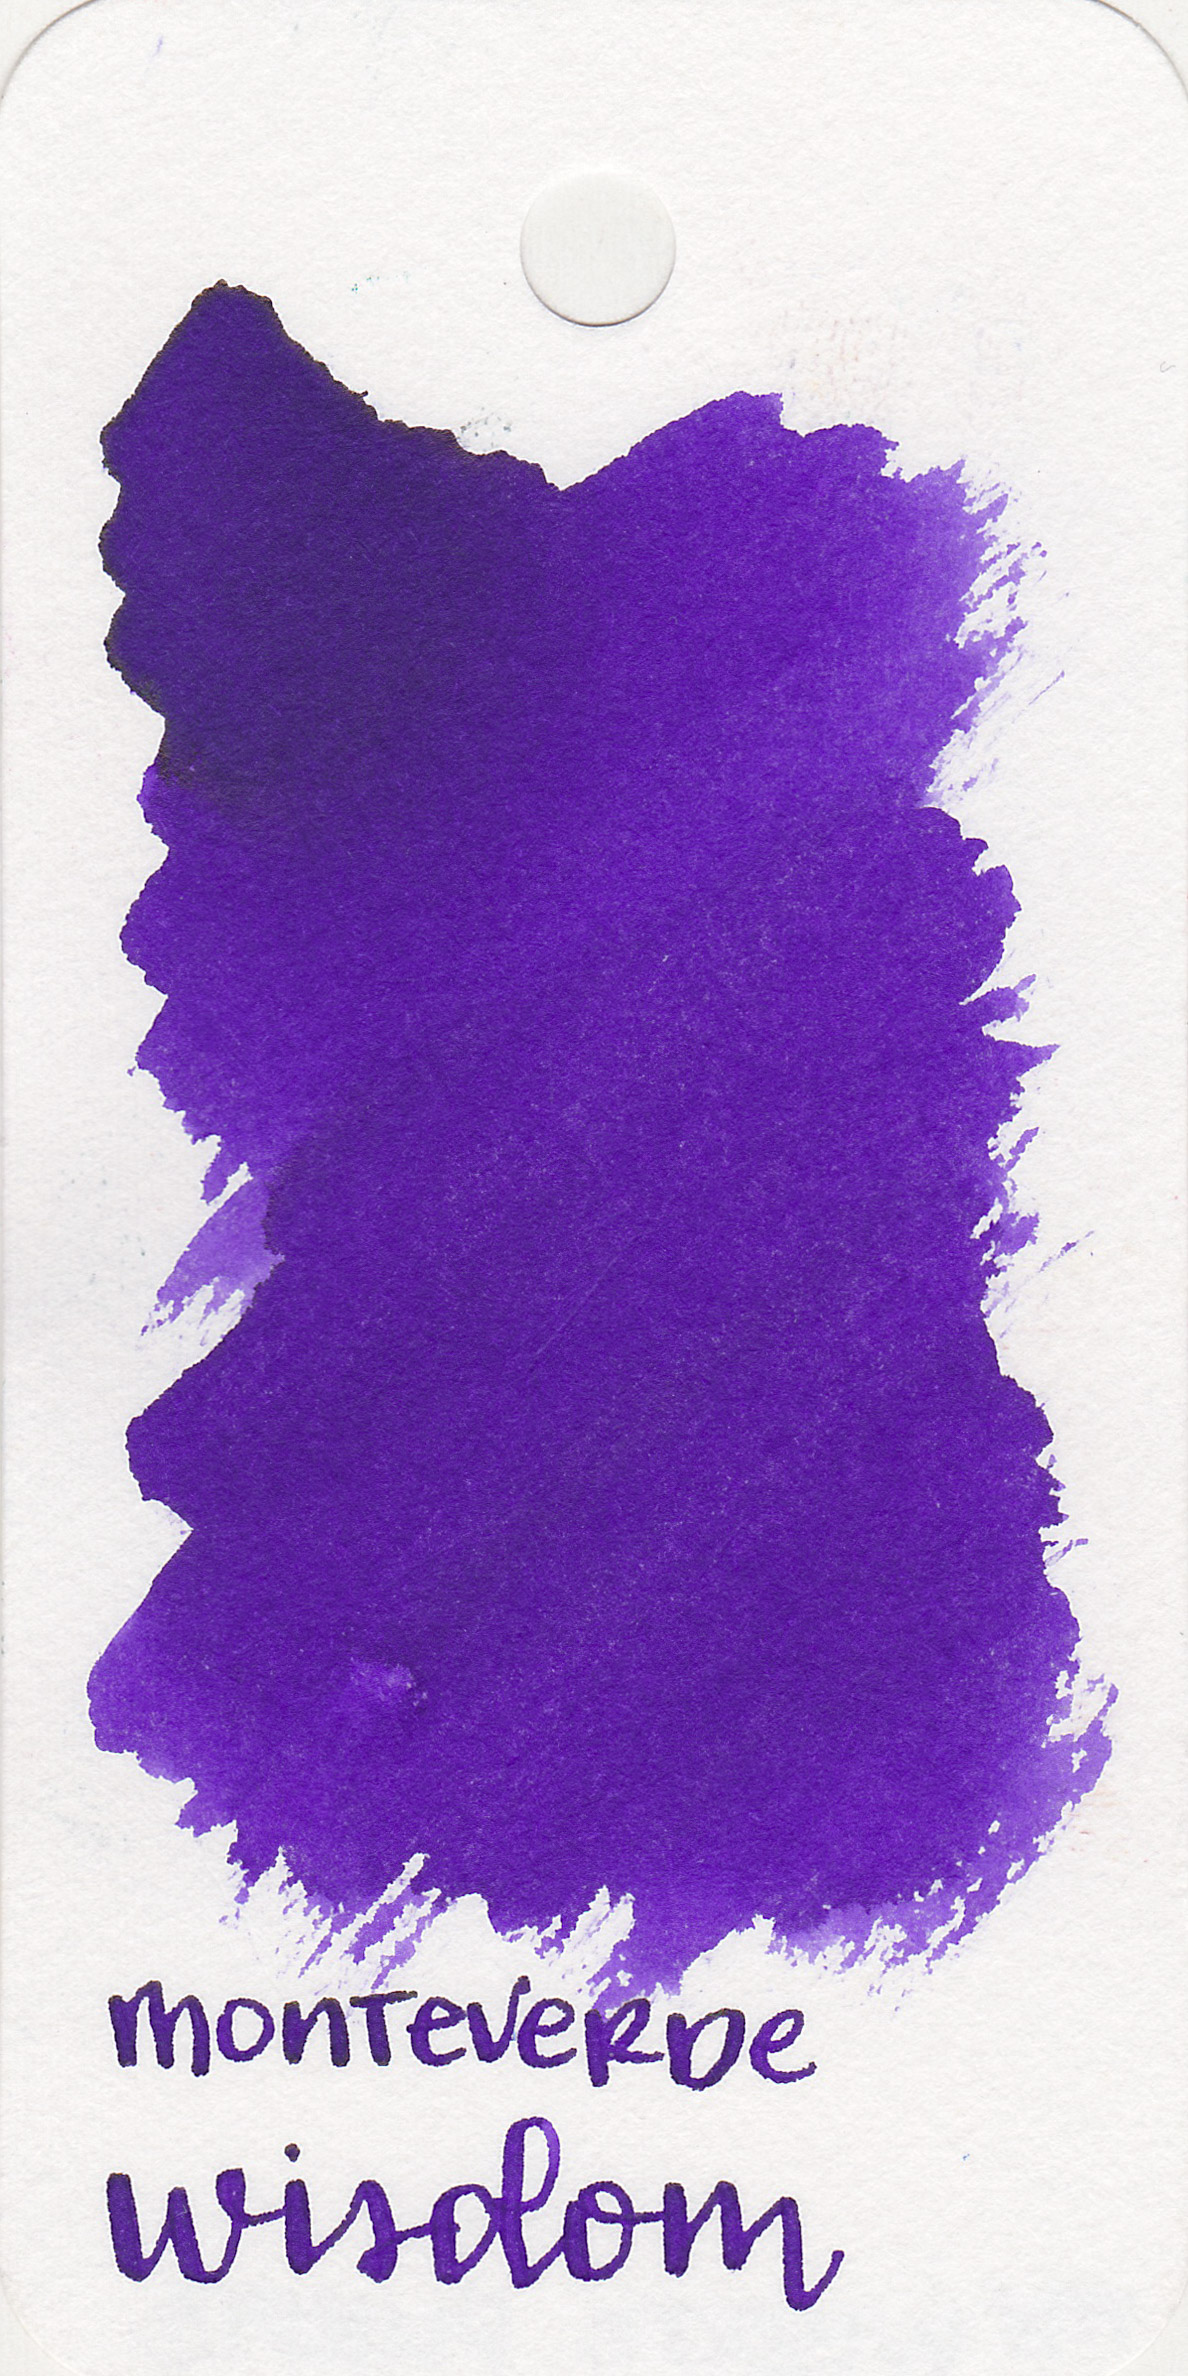 The color: - Wisdom is a bright, medium purple. Not too red or too blue, but right in the middle.